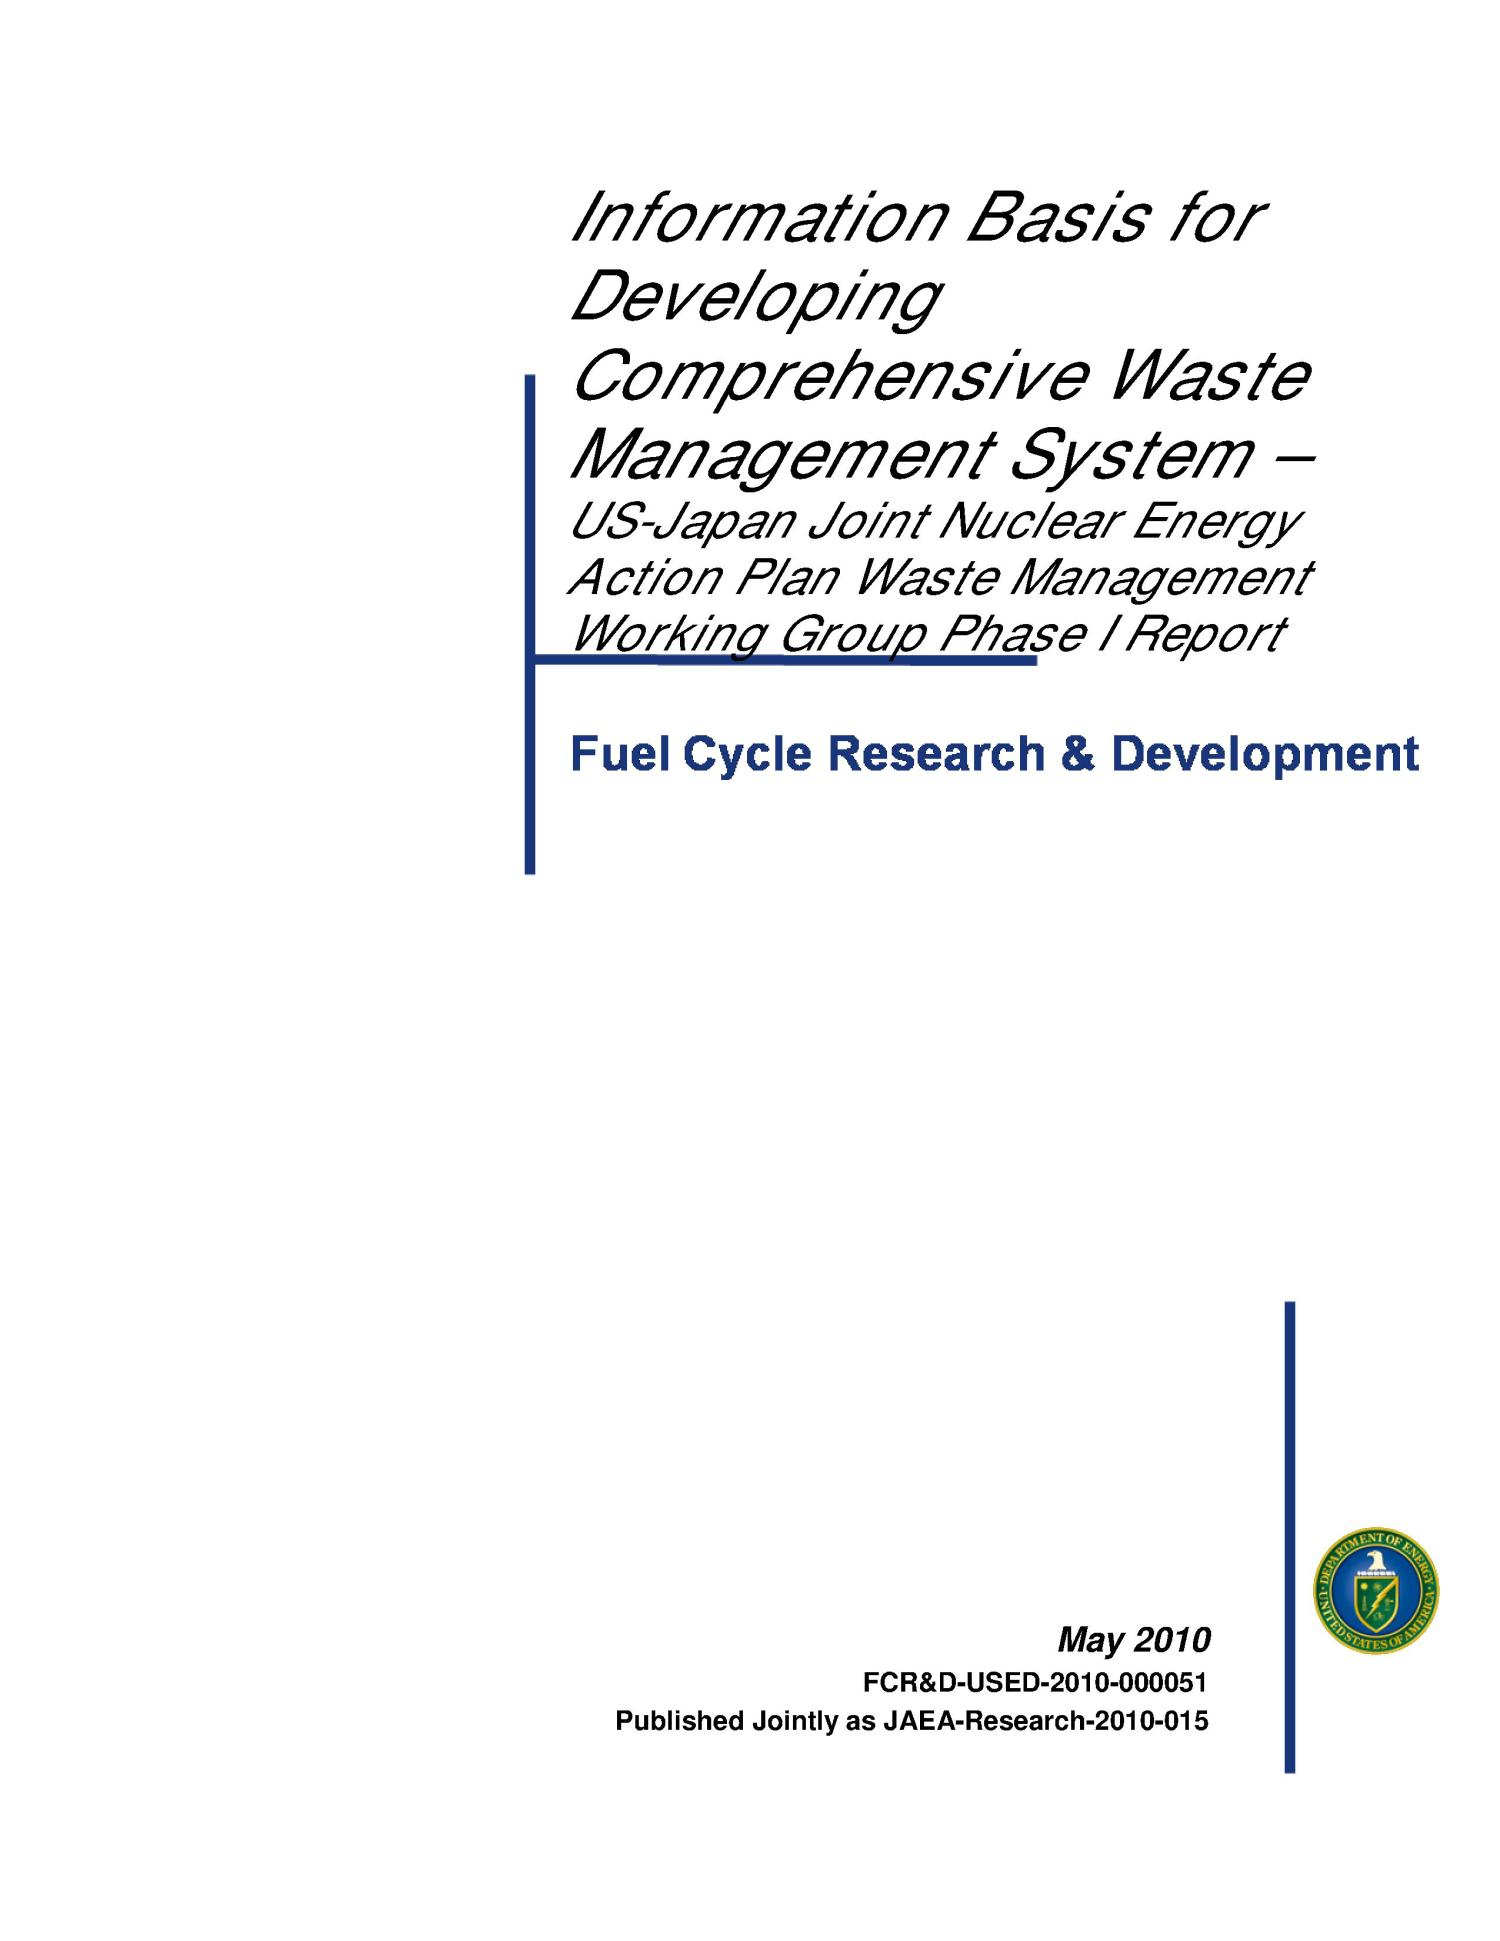 Information basis for developing comprehensive waste management